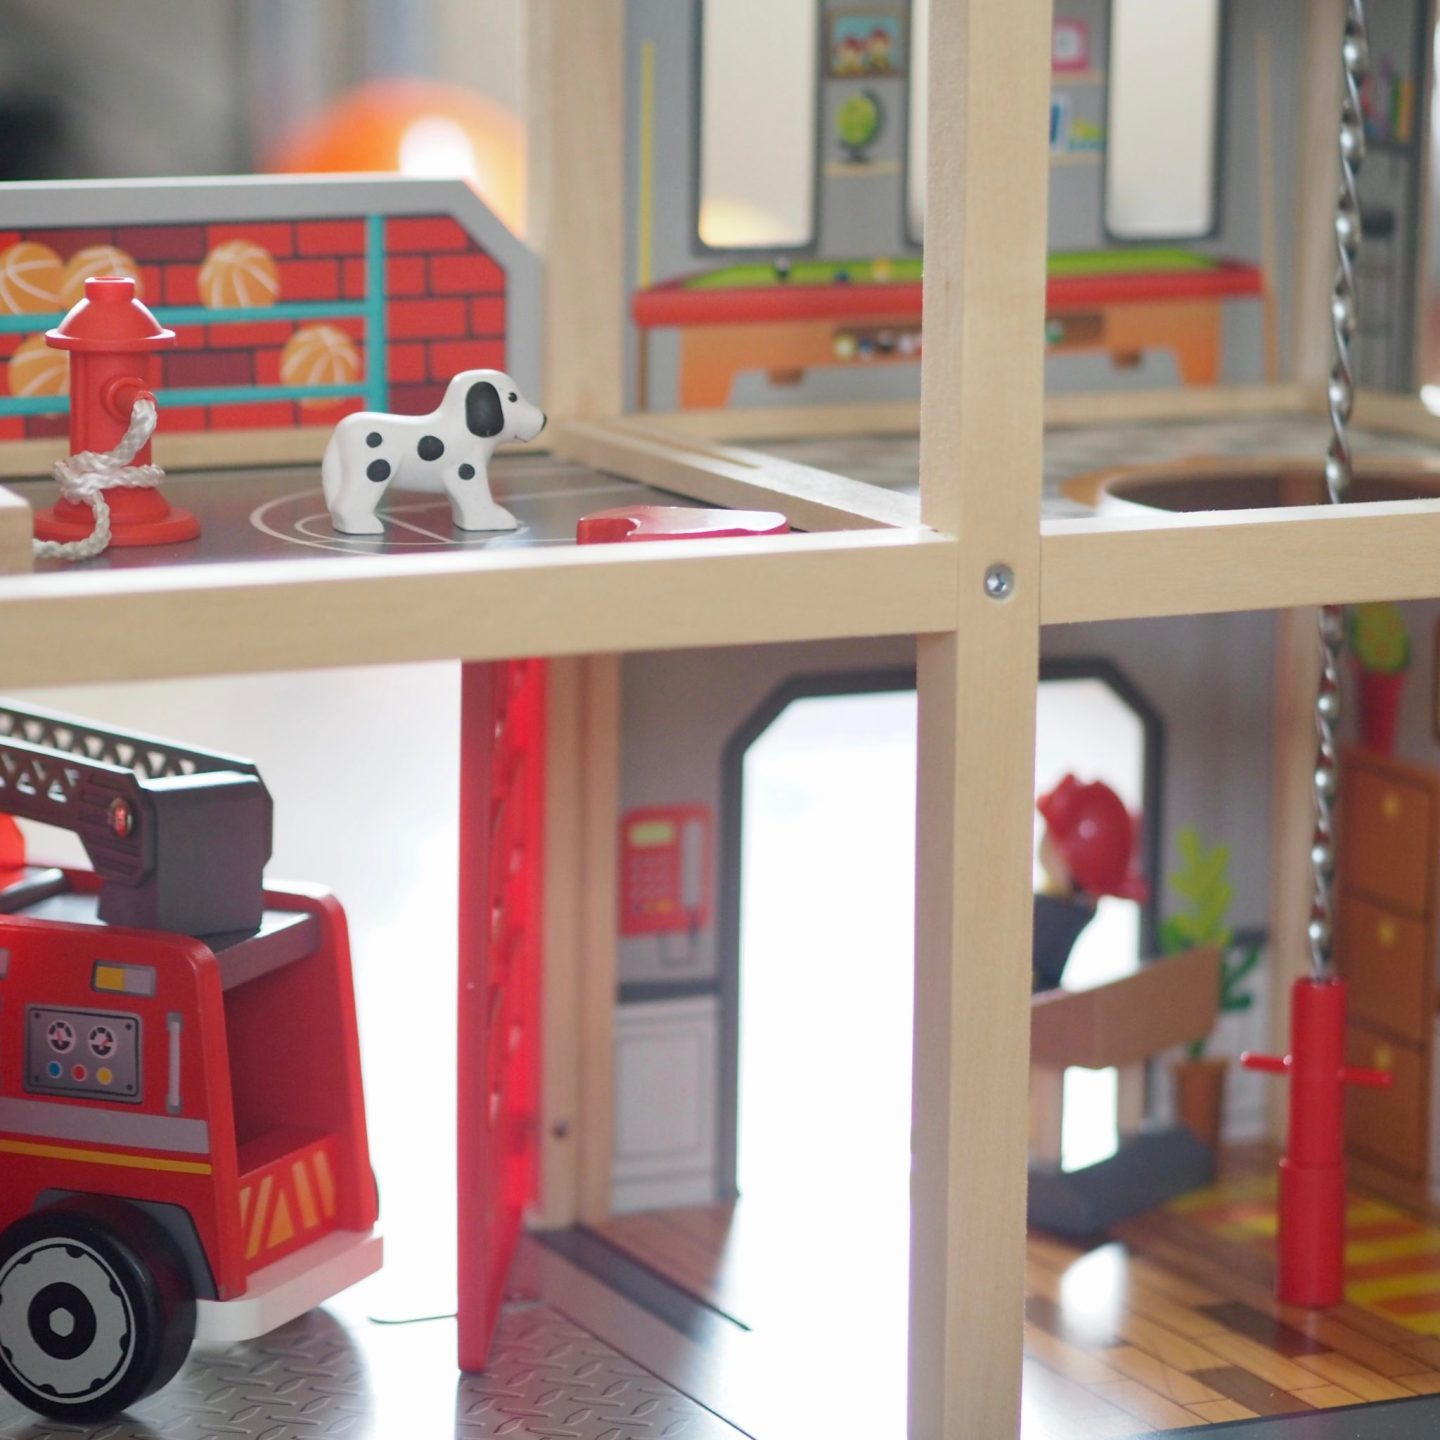 Multi level fire station toy - Hape - Review